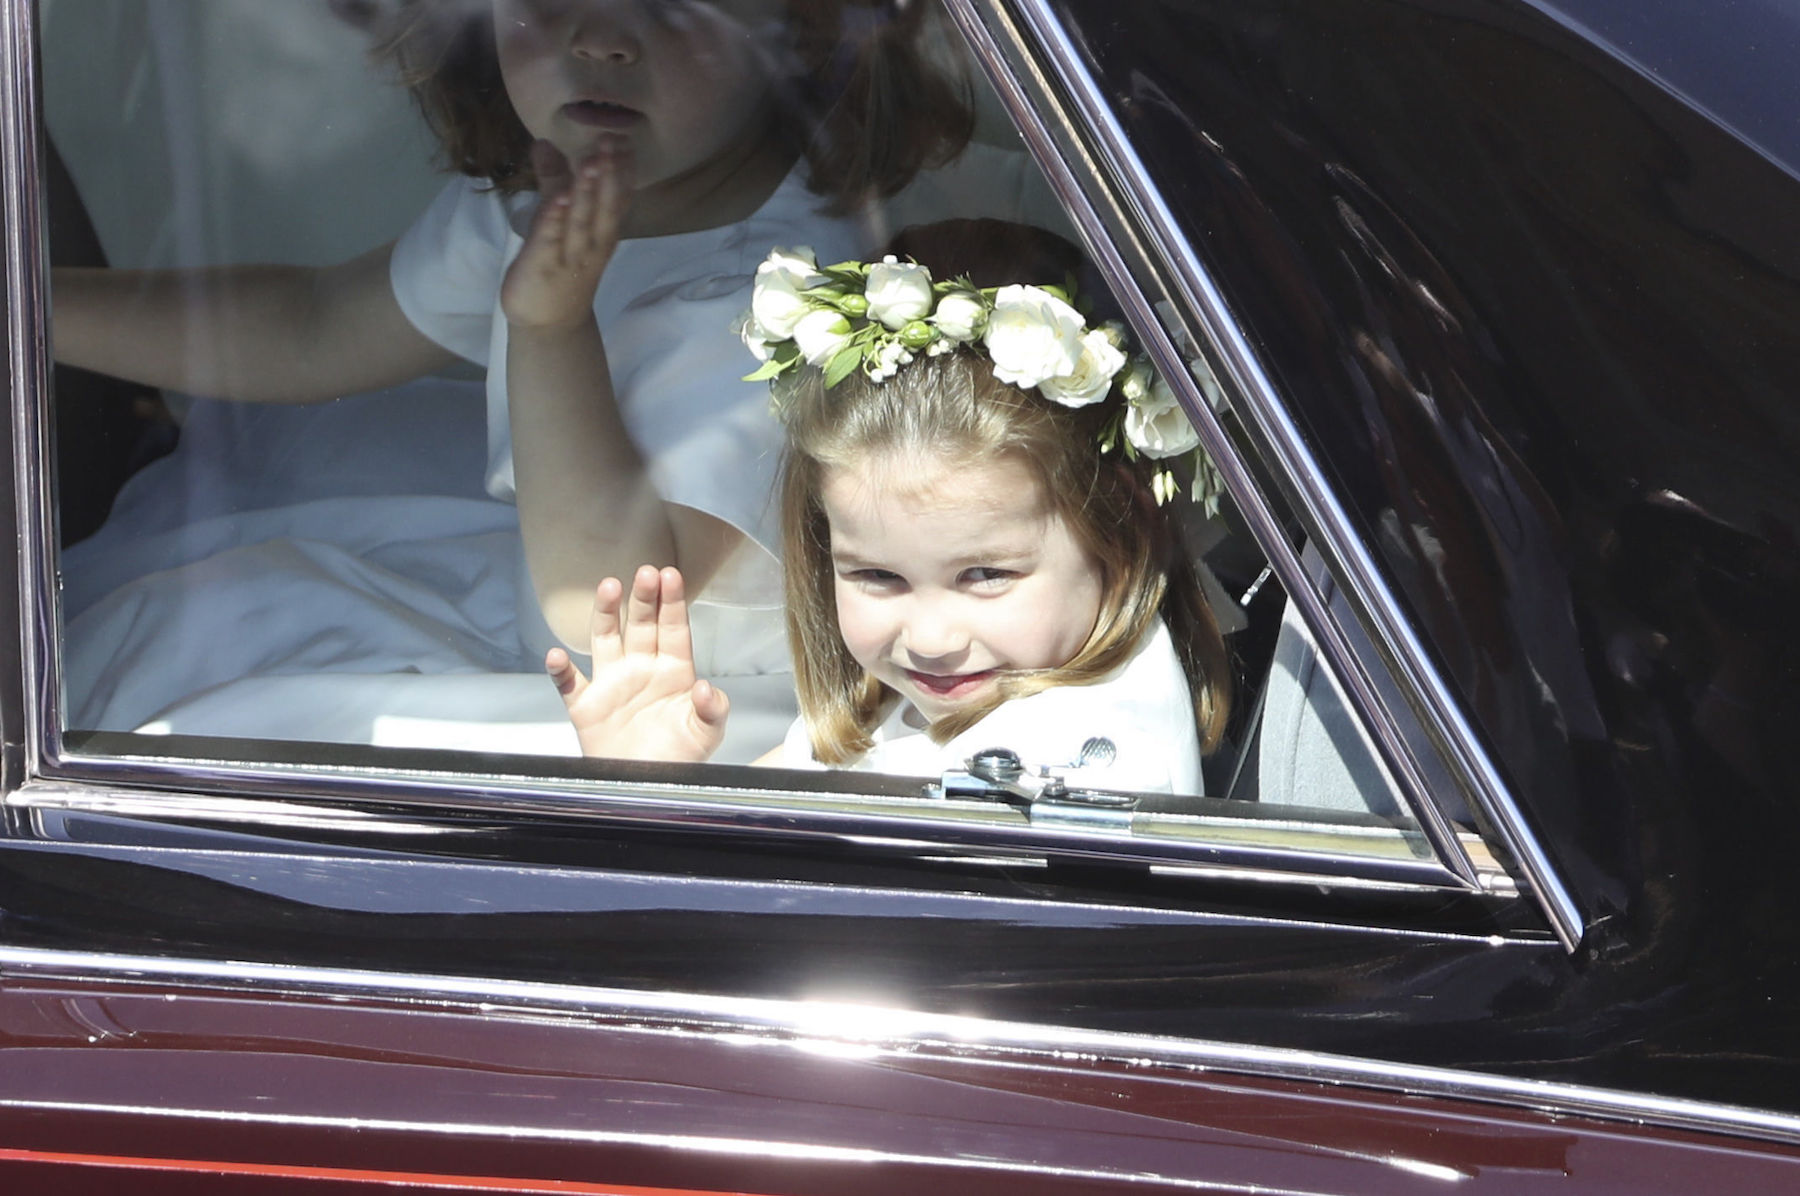 <div class='meta'><div class='origin-logo' data-origin='AP'></div><span class='caption-text' data-credit='Andrew Milligan/pool photo via AP'>Princess Charlotte waves as she rides in a car to the wedding ceremony of Prince Harry and Meghan Markle at St. George's Chapel in Windsor Castle in Windsor.</span></div>